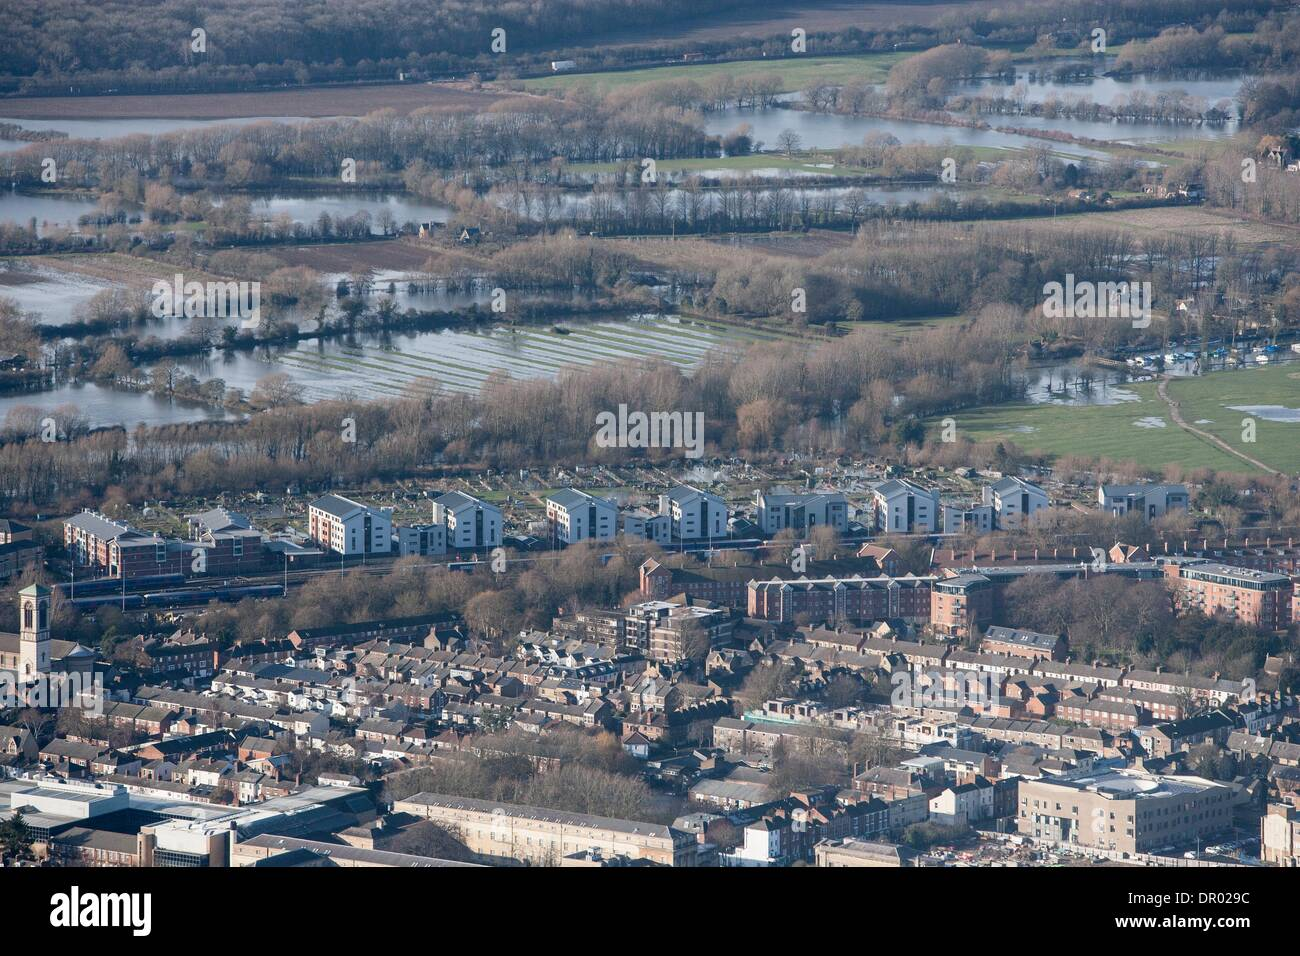 Oxford, UK. 14th January 2014. The  Thames, Oxford in  flood .  View  North towards Binsey  and the southern edge of  Portmeadow. a natural flood plain.  The controversial University buildings  of Roger Dudman Way  can  be seen ( centre )  along railway lines. Credit:  adrian arbib/Alamy Live News - Stock Image